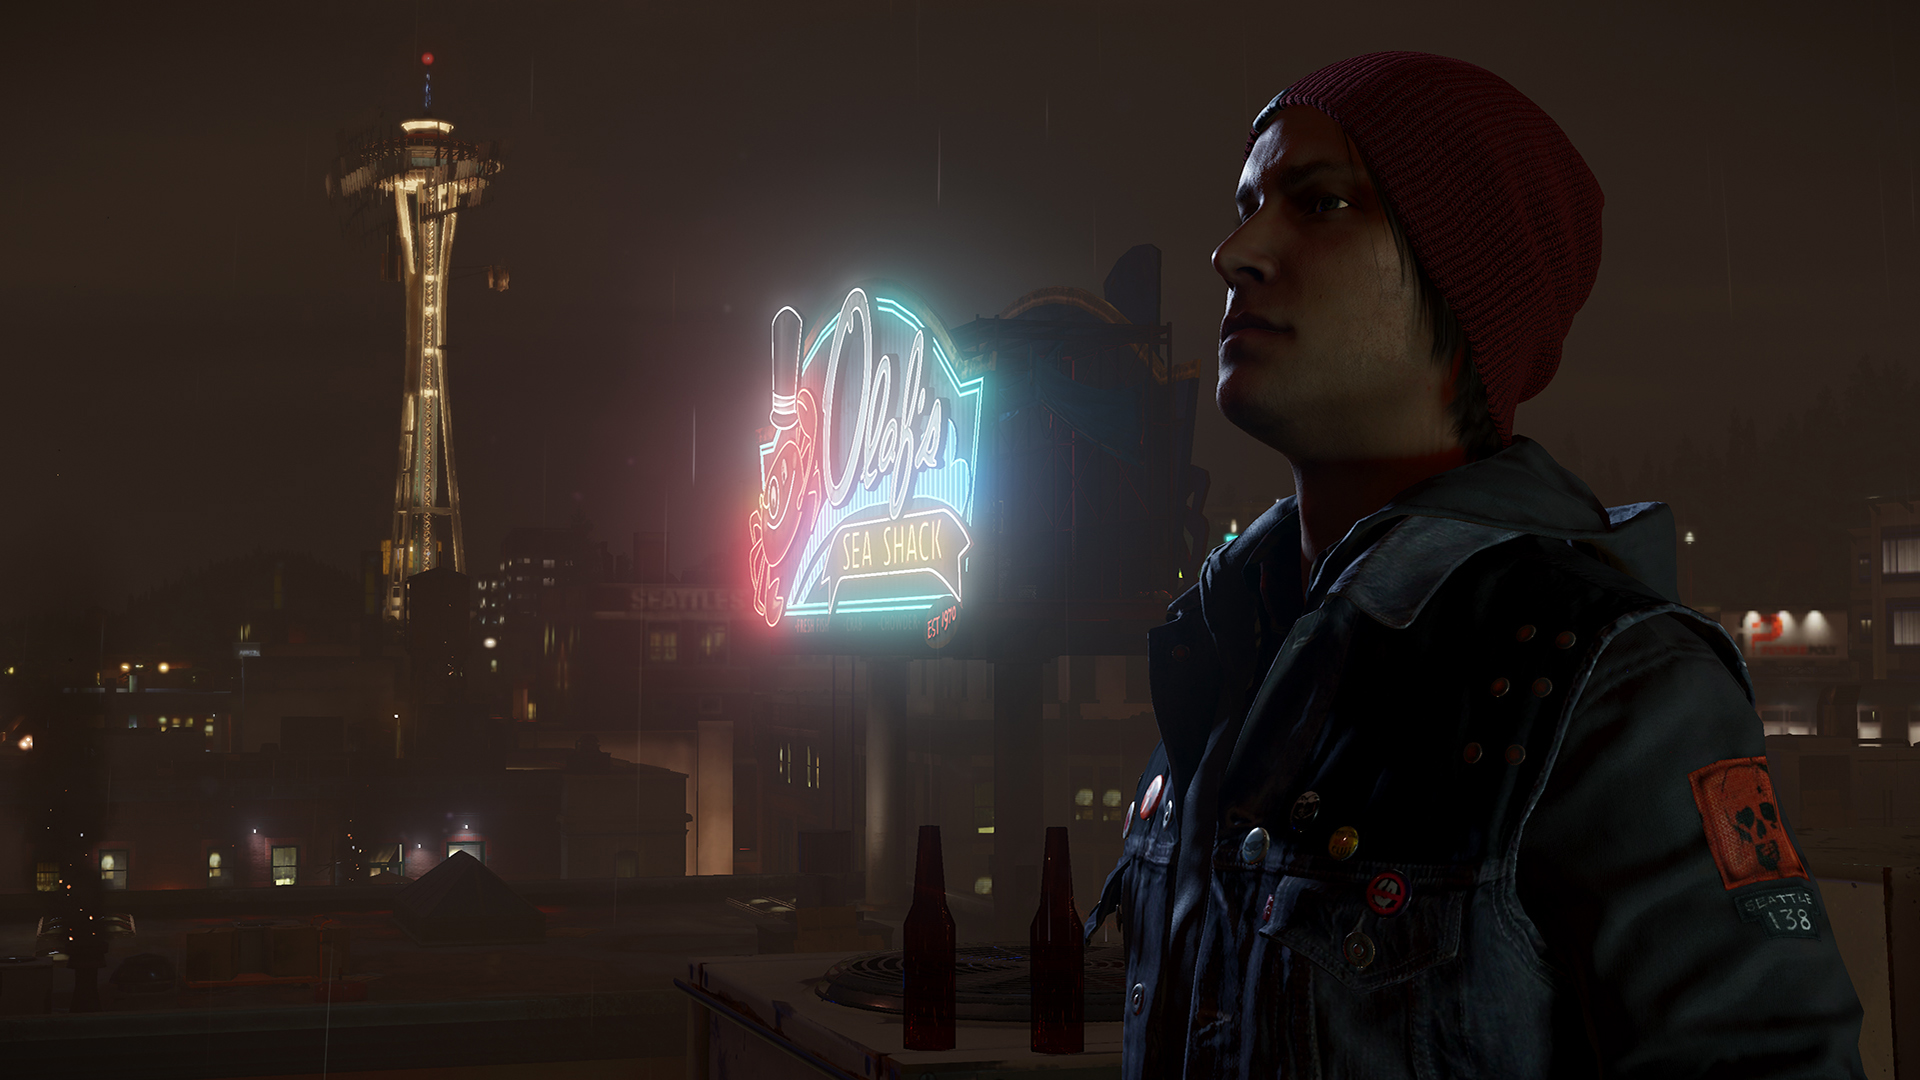 1393959442-infamous-second-son-delsin-night-scenery.jpg - inFamous: Second Son